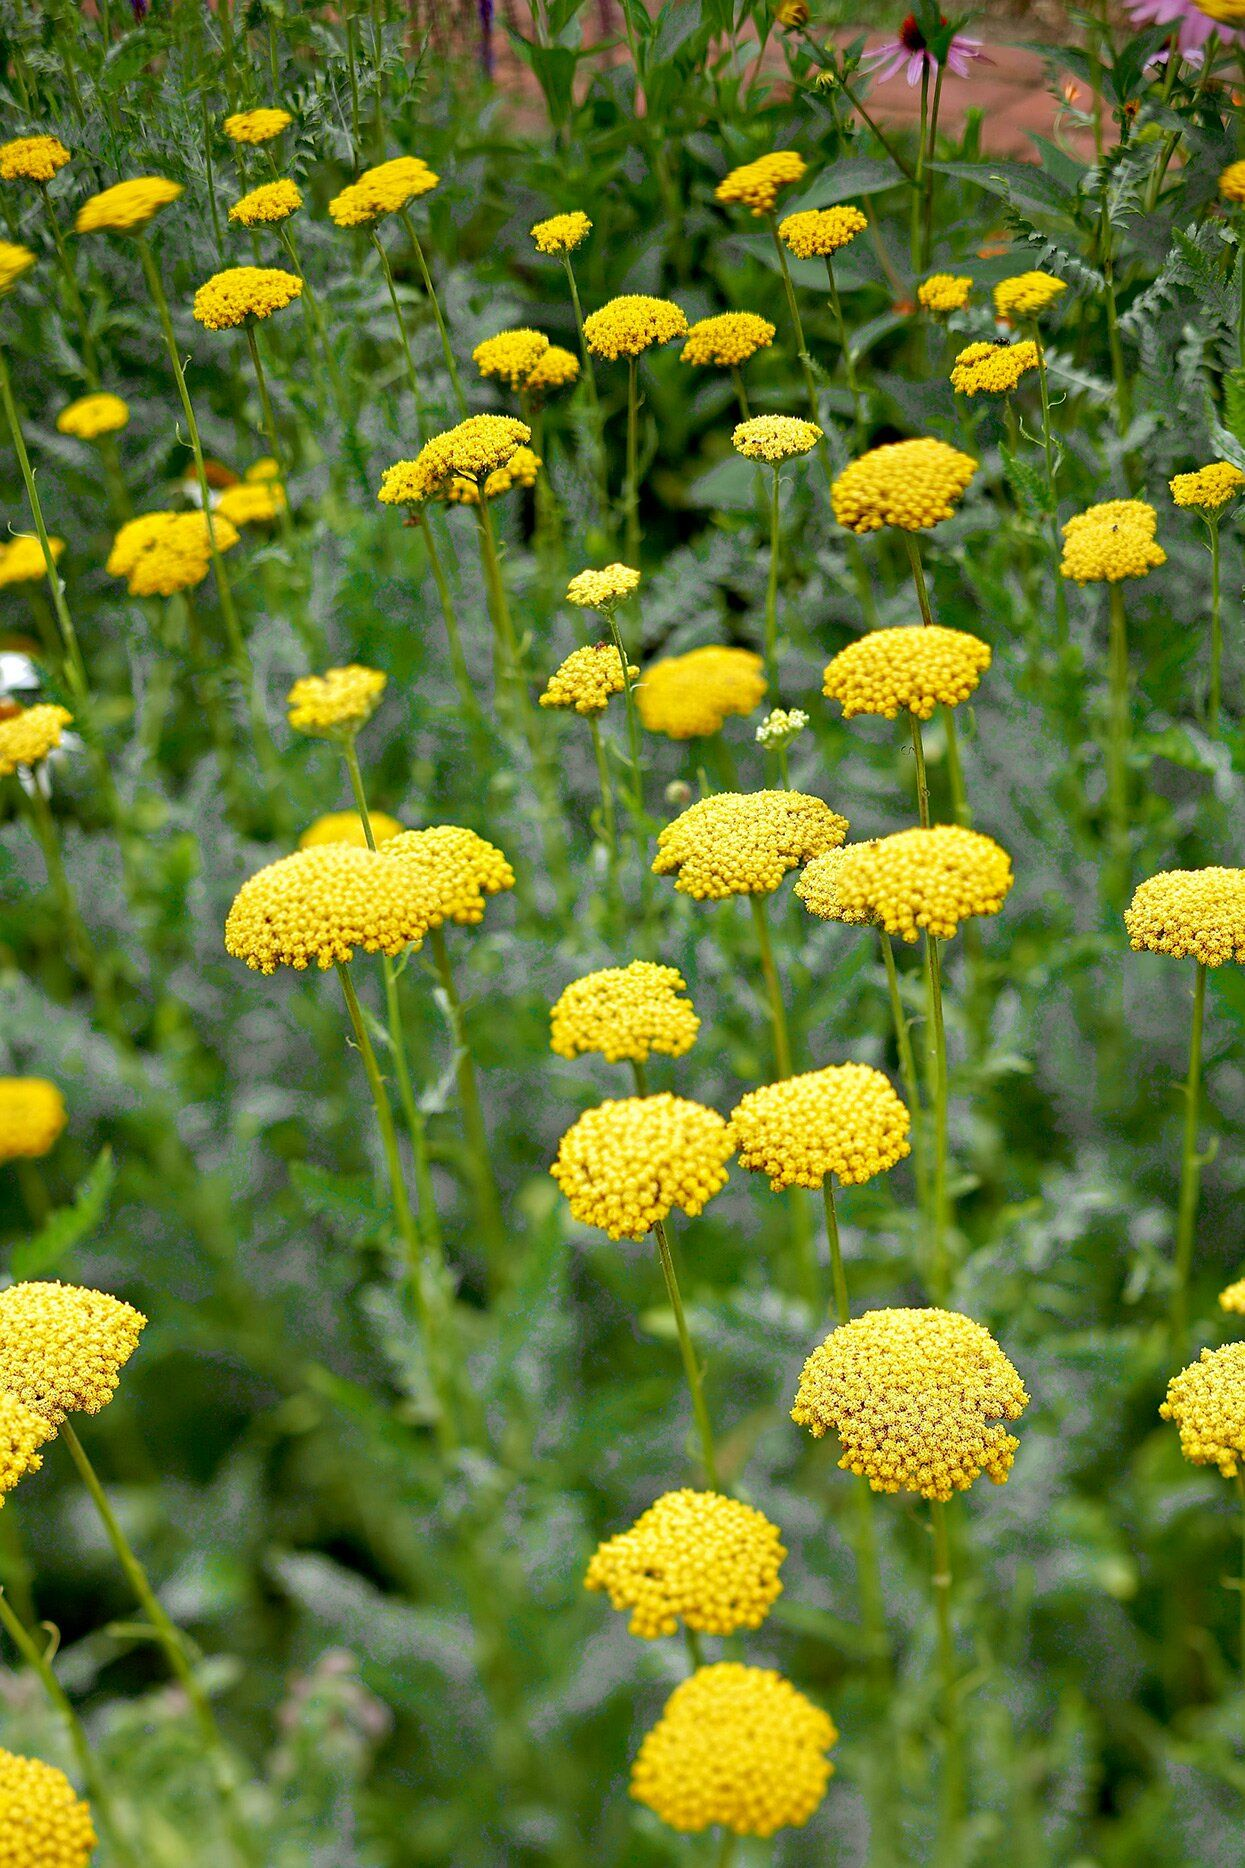 24 Of The Best Perennials That Will Thrive In Clay Soil In 2020 Hardy Perennials Flowers Perennials Best Perennials